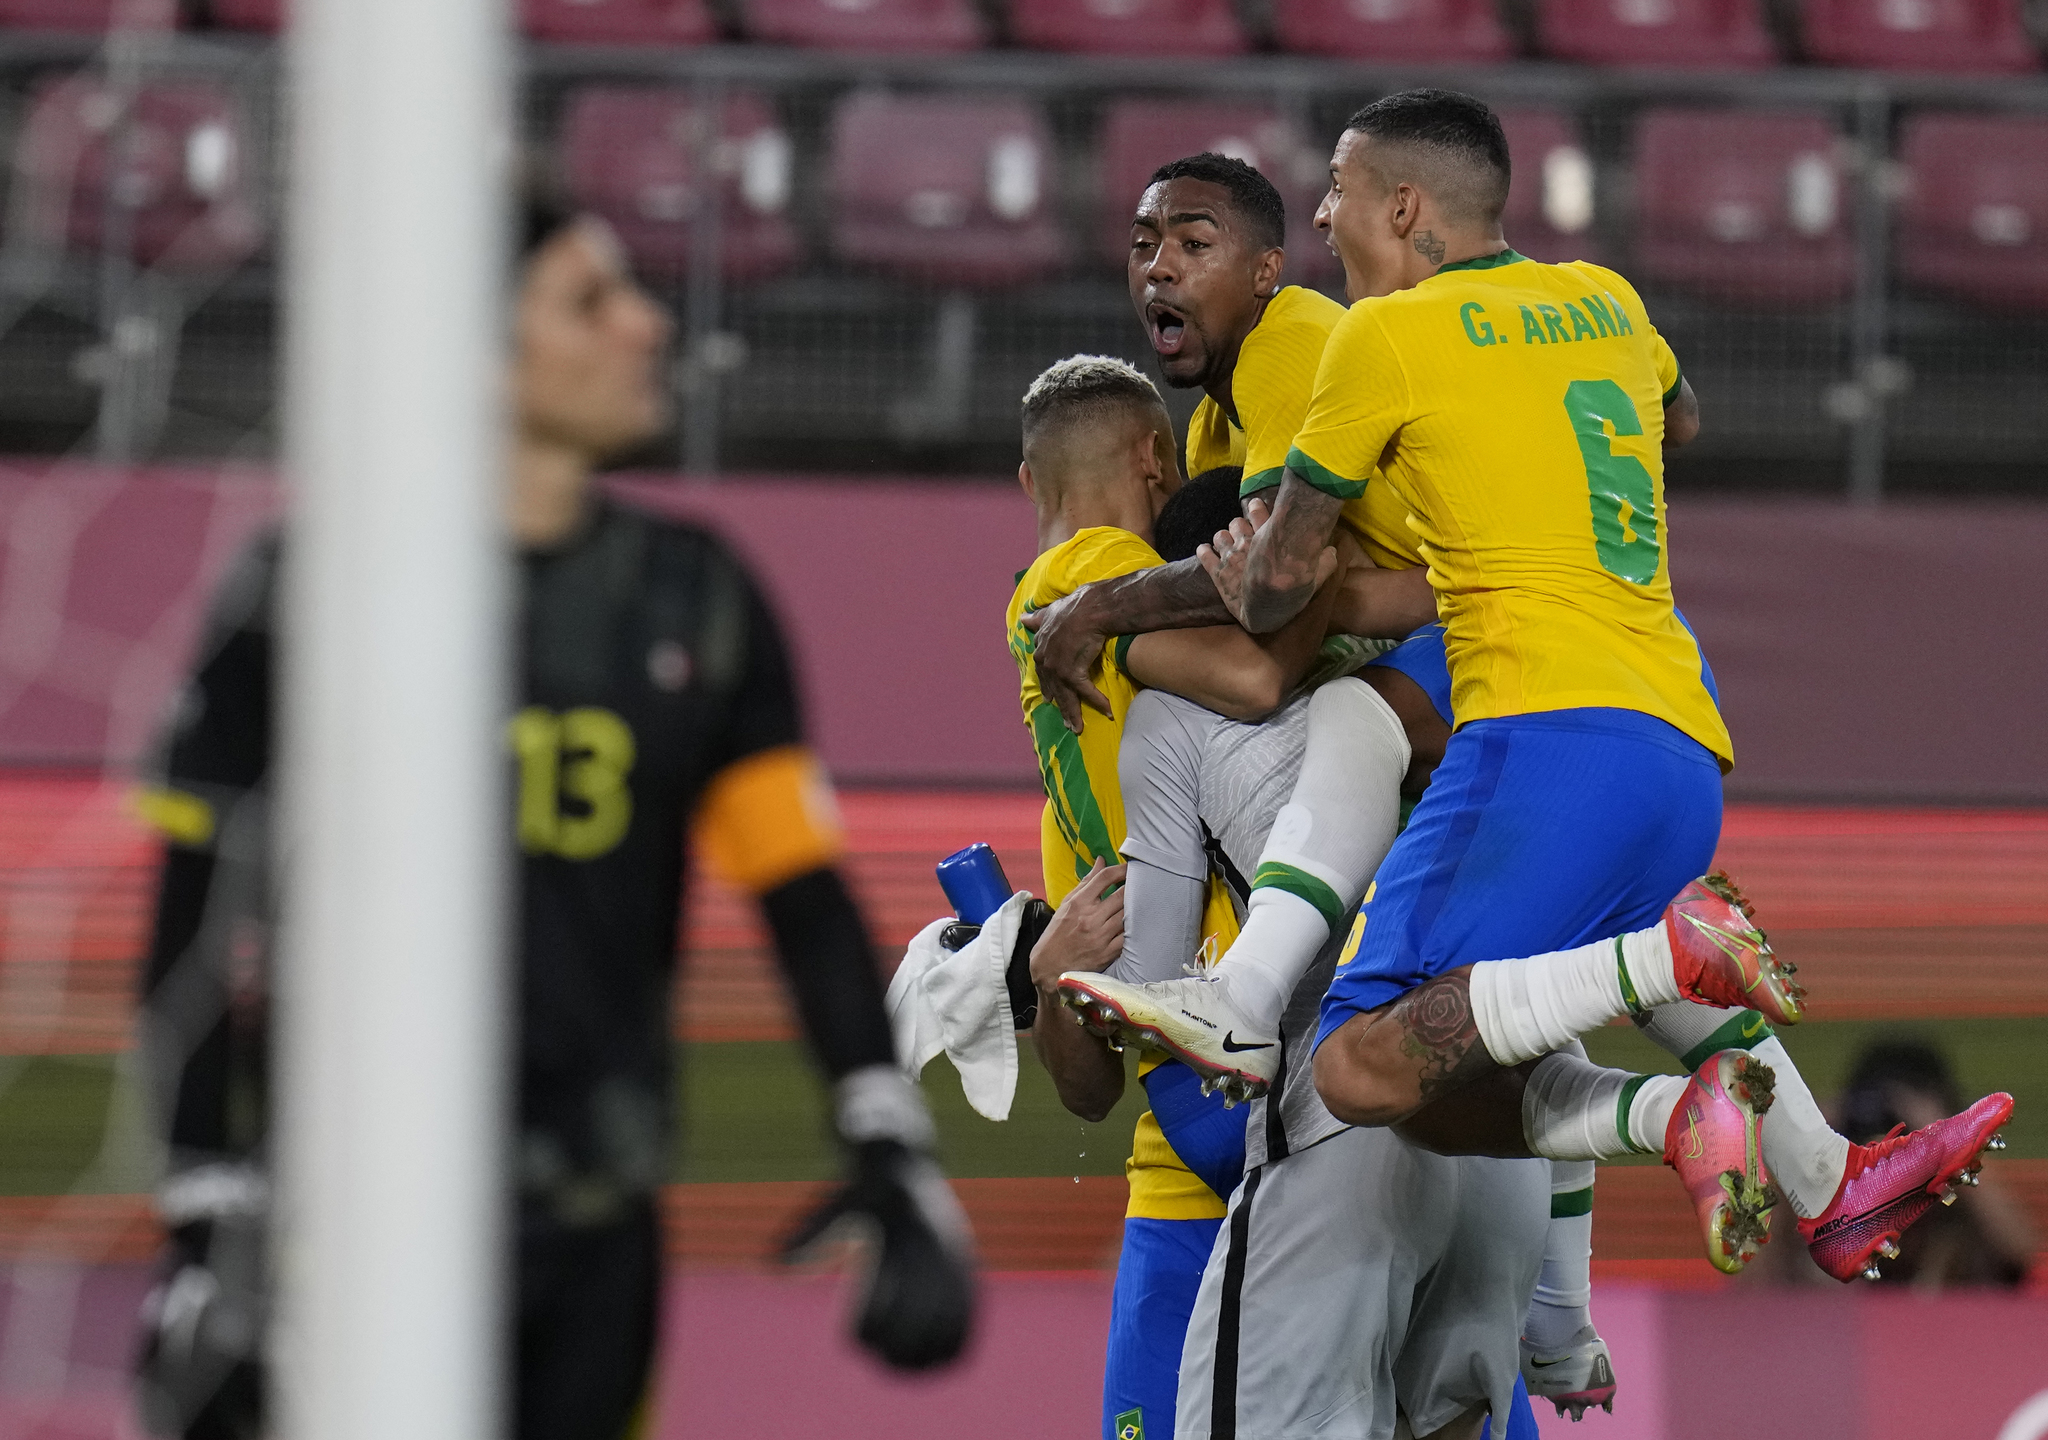 Brazil's players celebrate after beating Mexico on penalties in the semi-finals at Tokyo 2020.